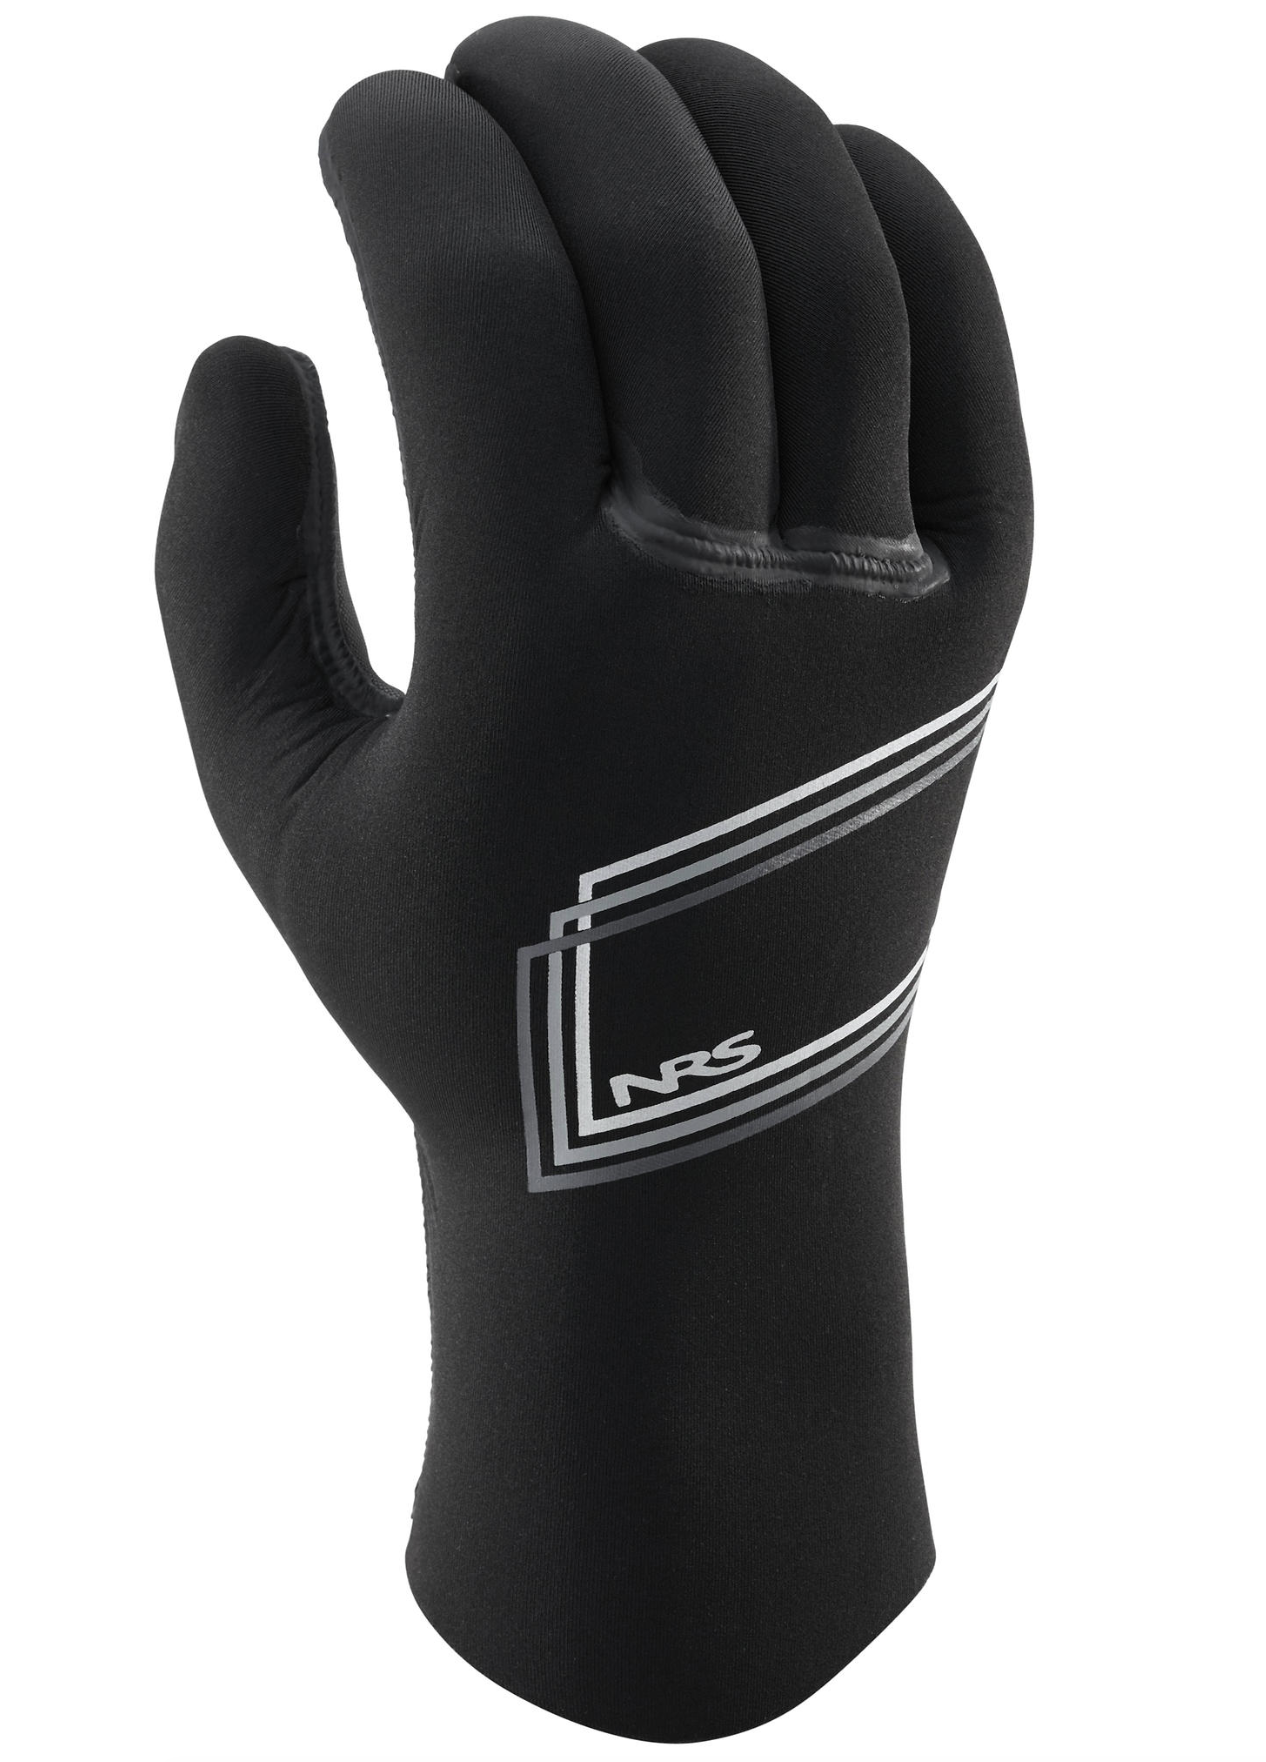 Handwear: Maxim Gloves by NRS - Image 4801